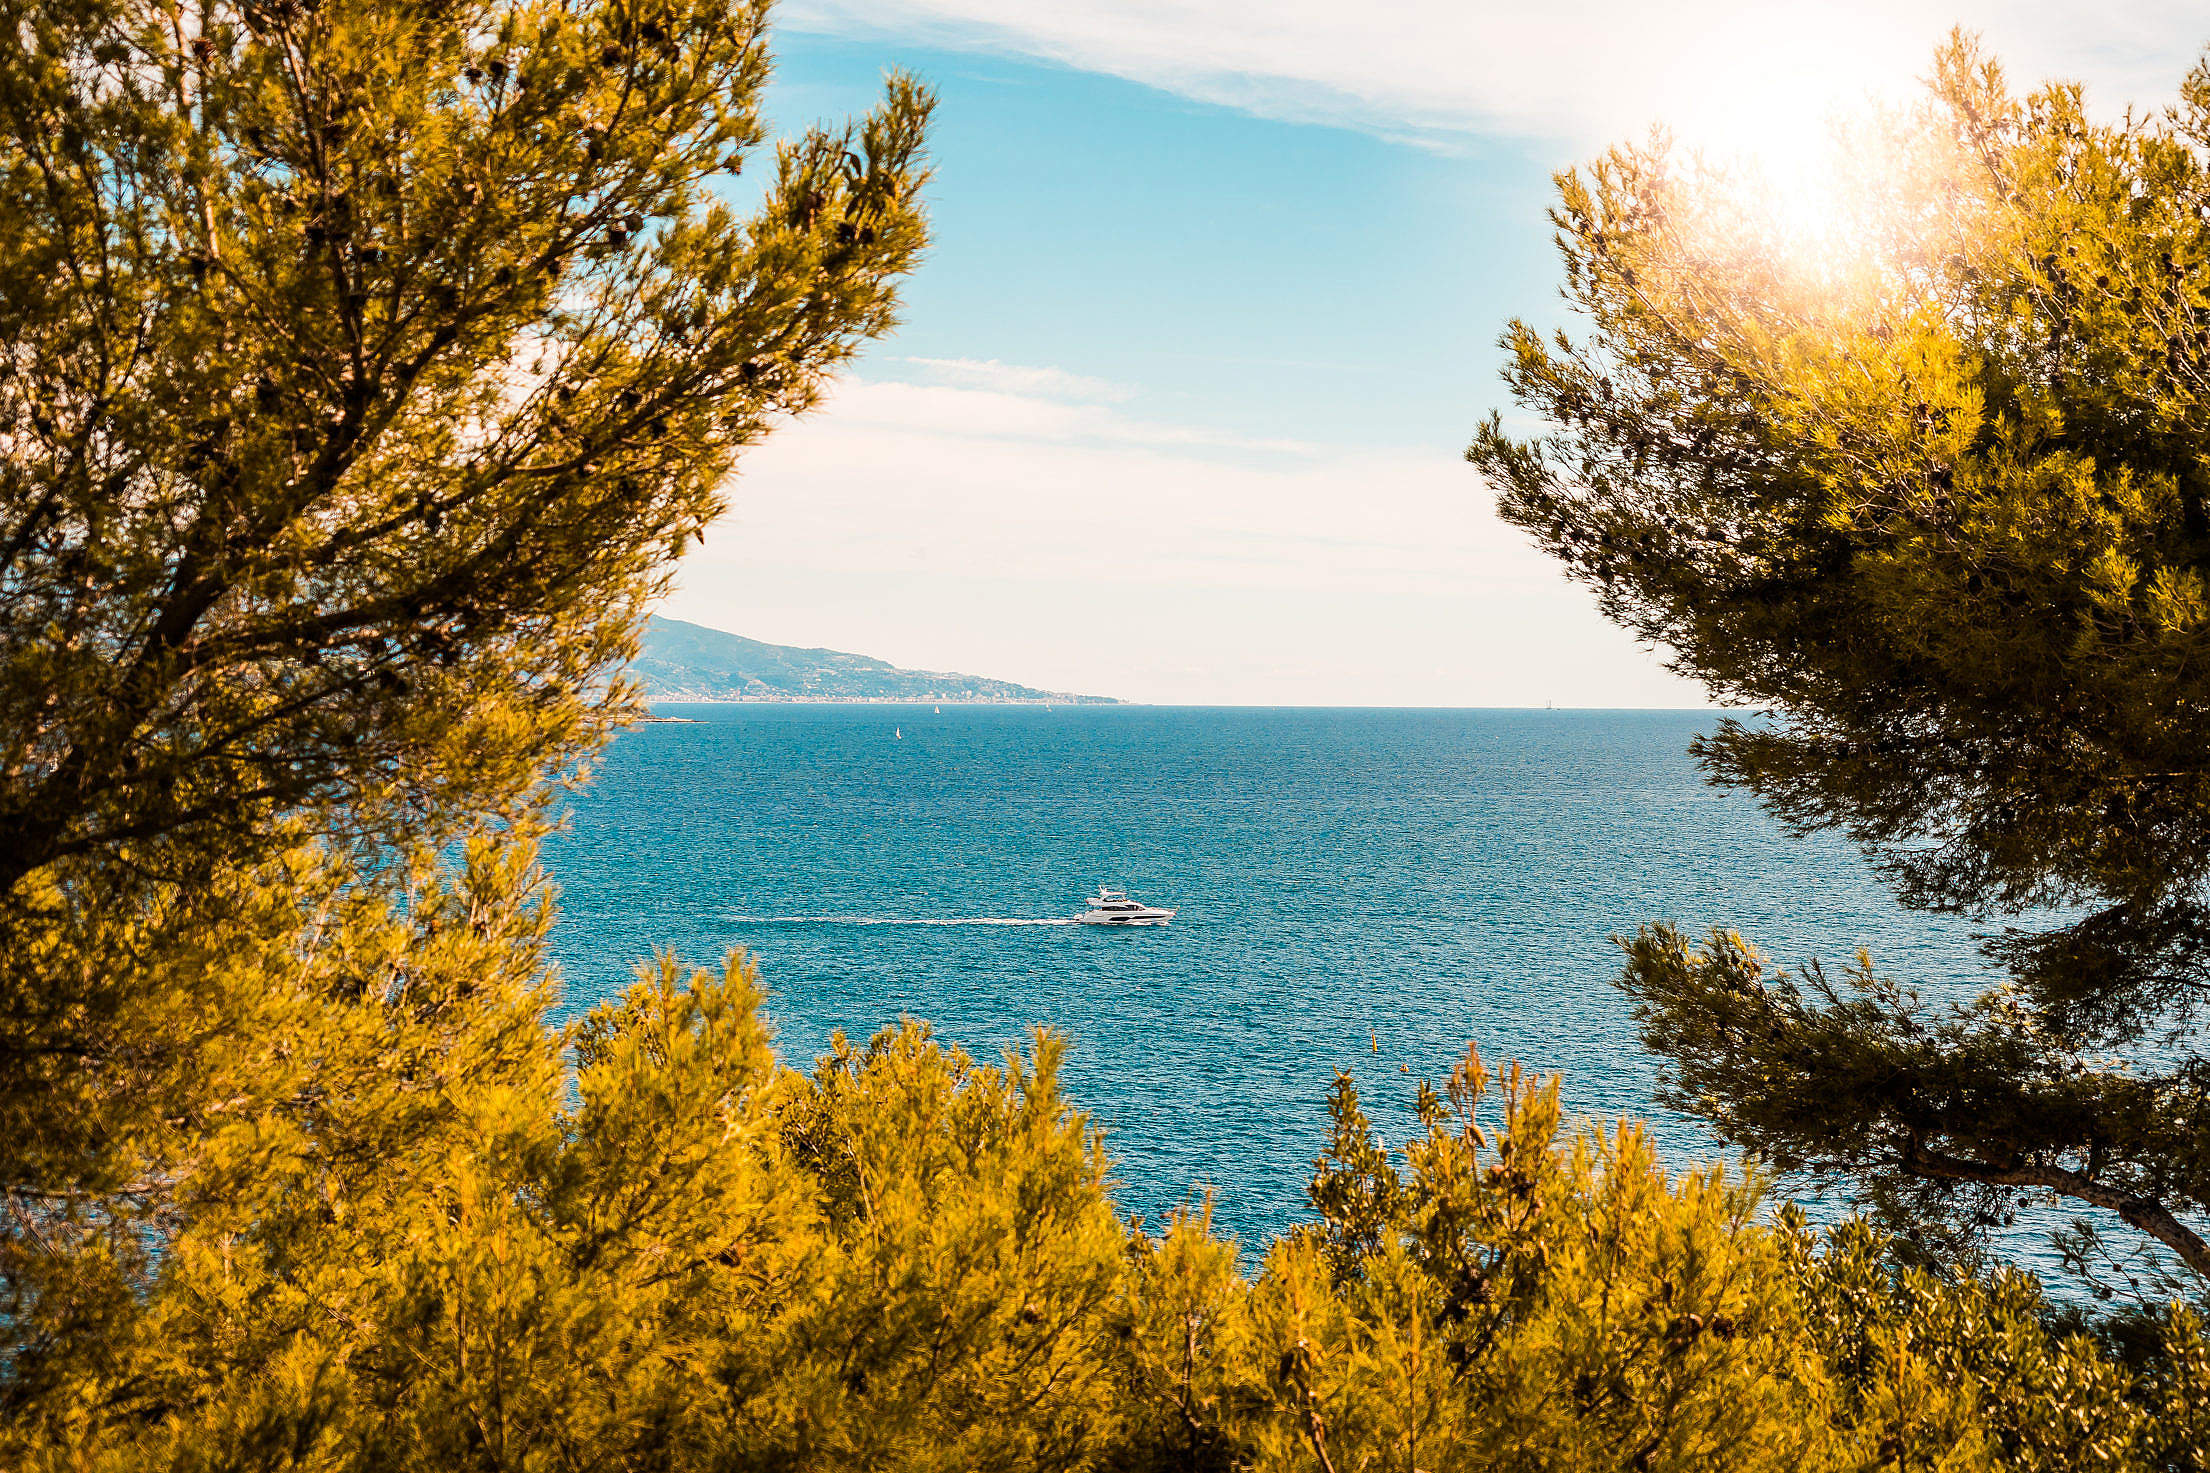 View of a Yacht in The Mediterranean Sea Free Stock Photo